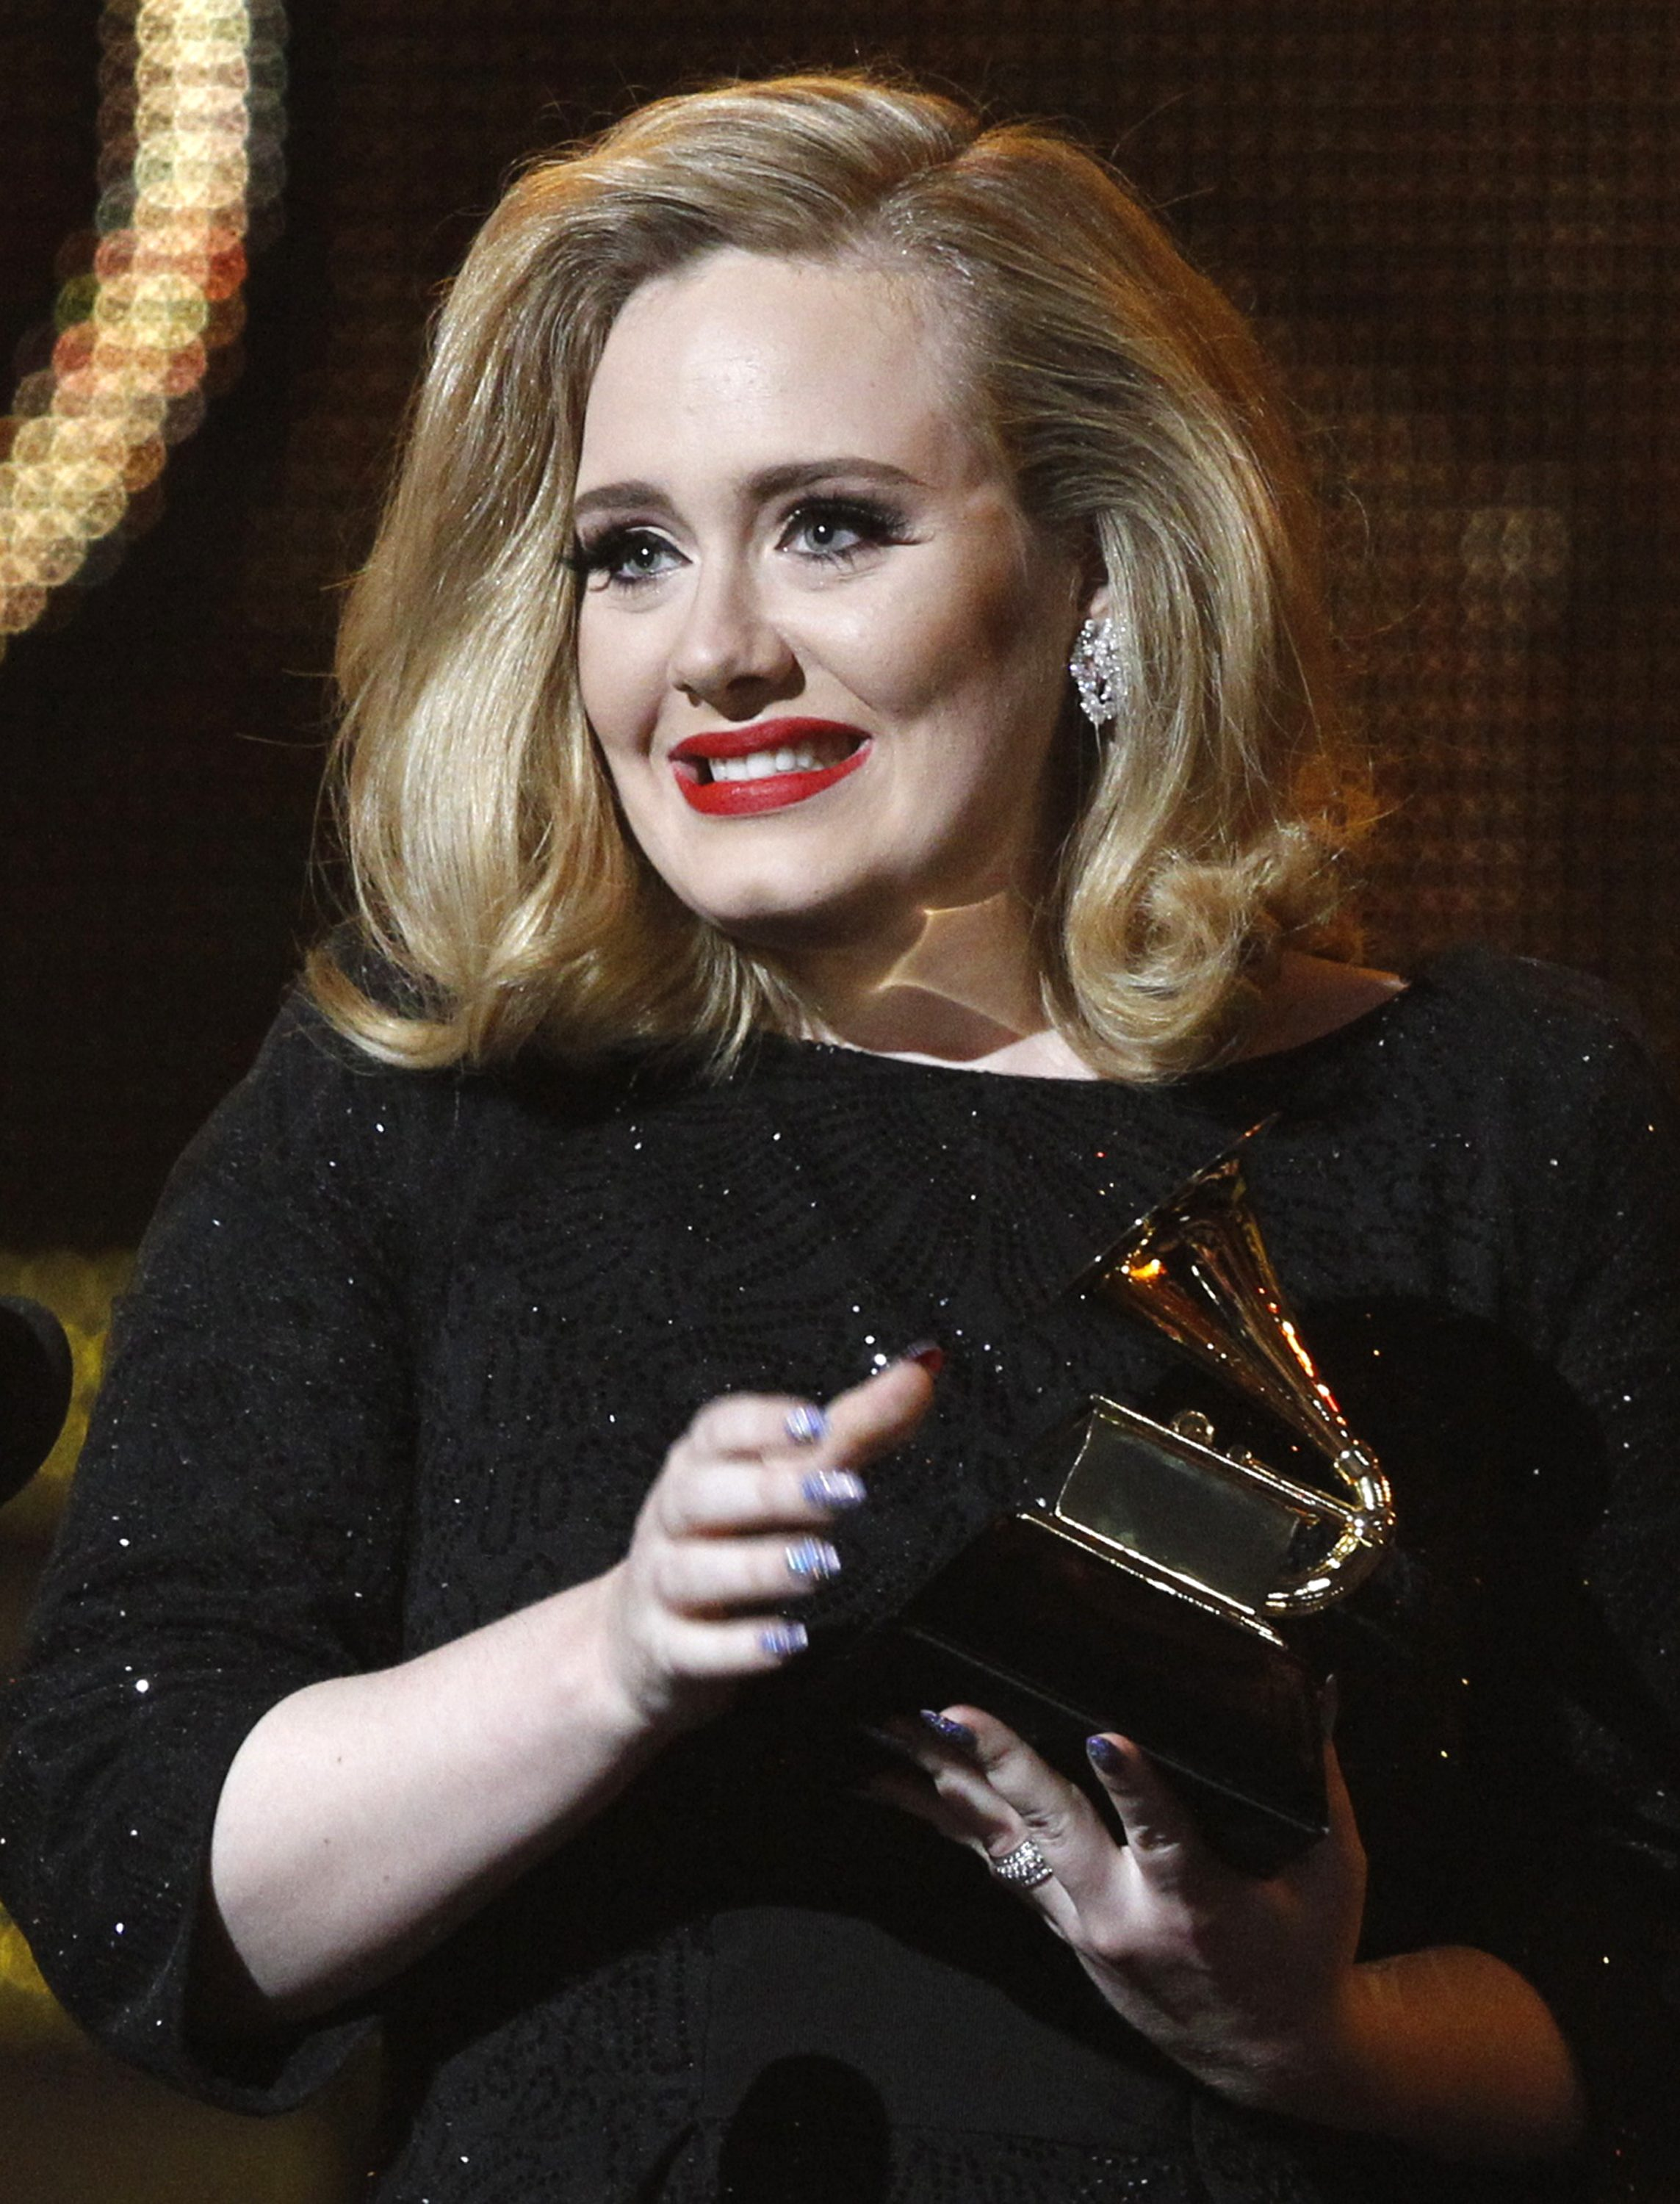 File photo of Singer Adele at the 54th annual Grammy Awards in Los Angeles